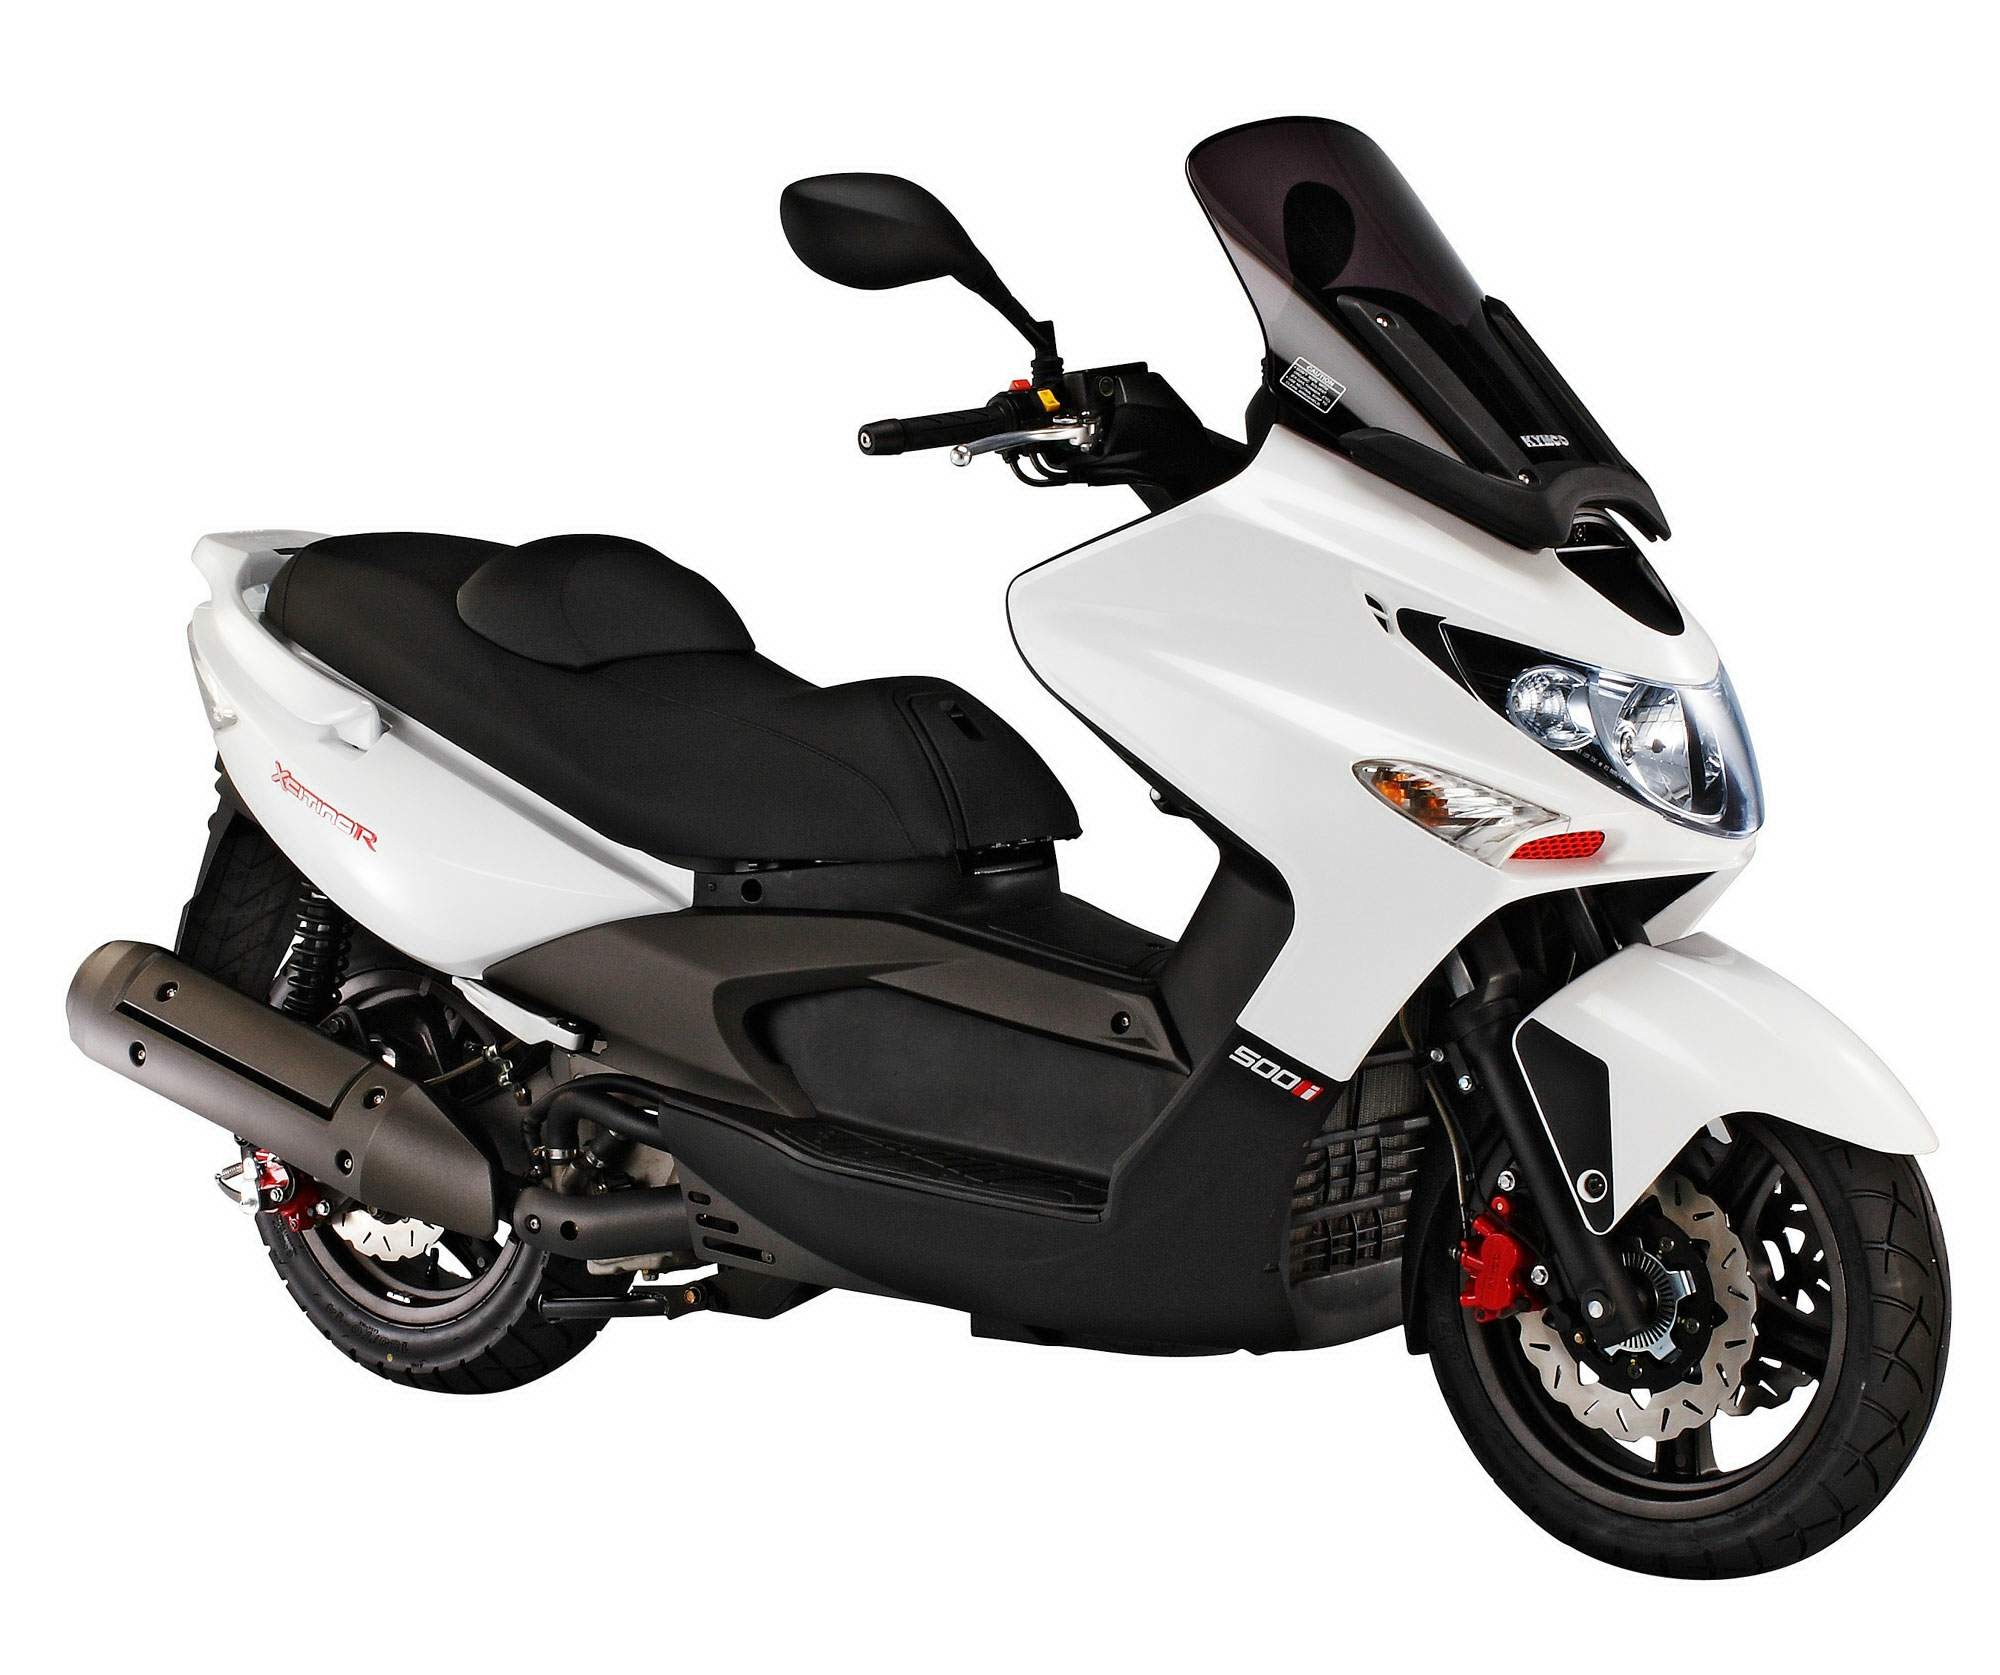 KYMCO Kymco Xciting 500Ri technical specifications